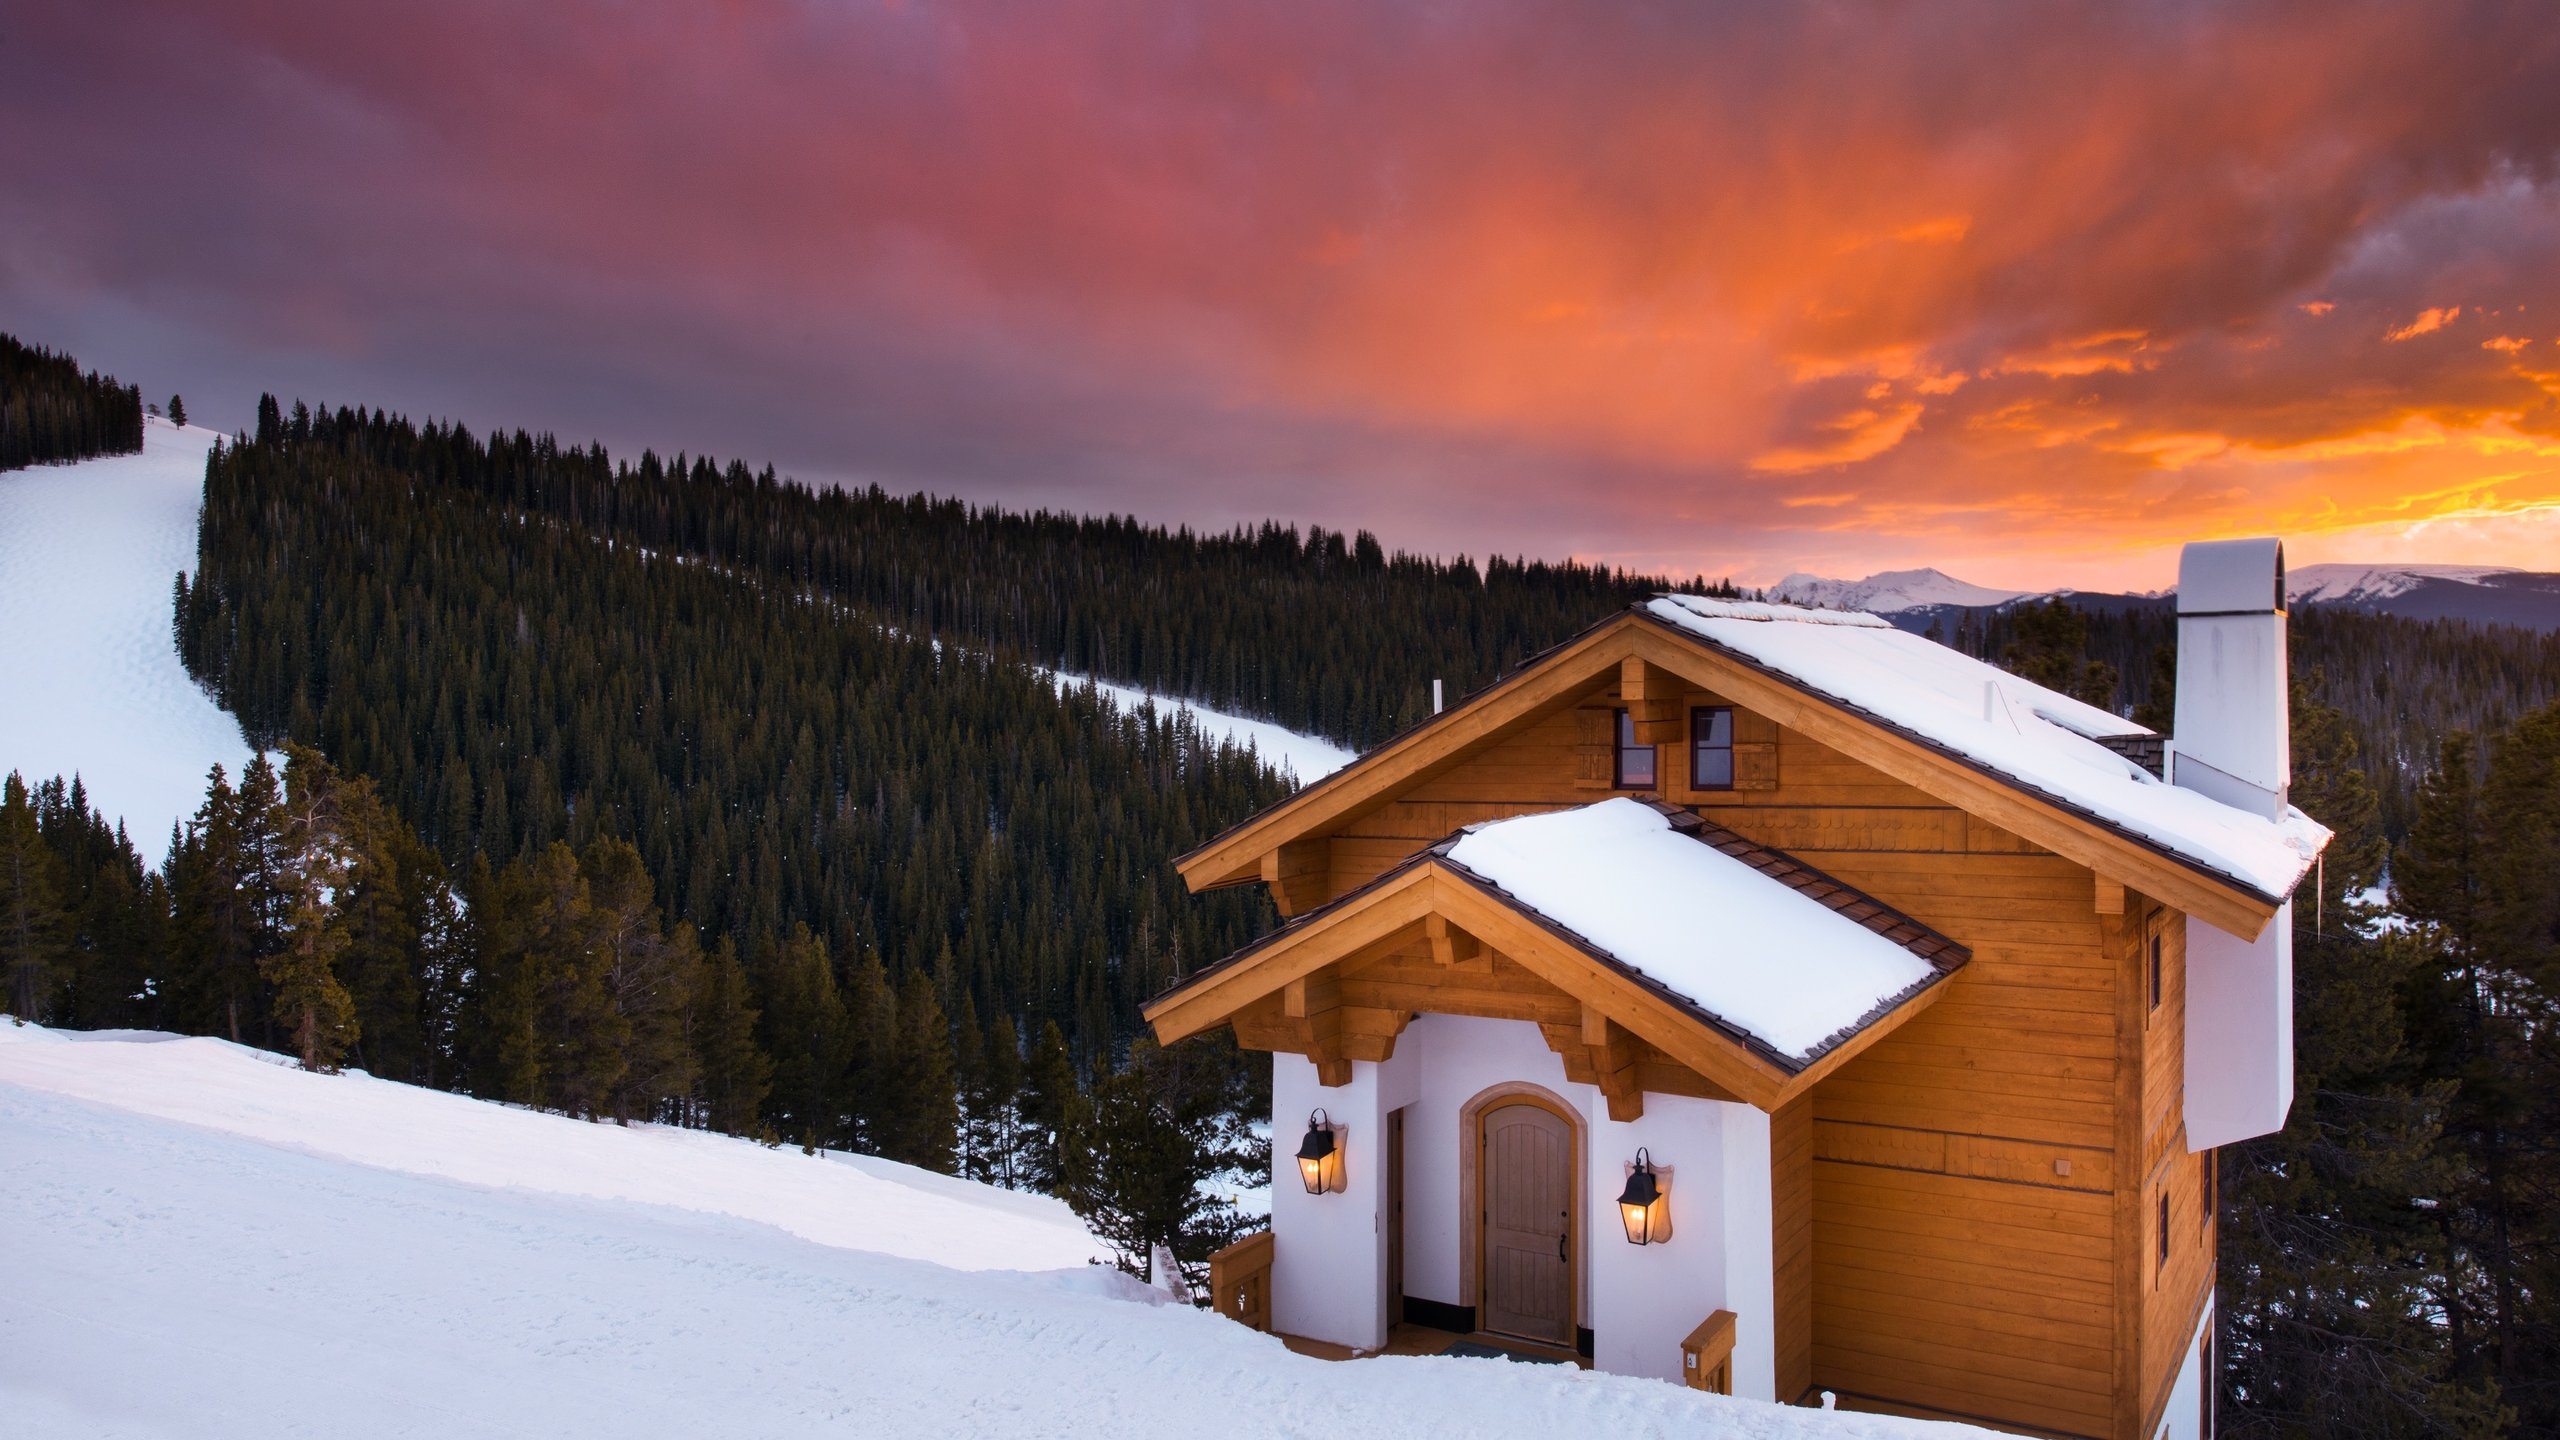 Book The Best Hotels In Vail Co For 2021 Free Cancellation On Select Hotels Expedia Ca